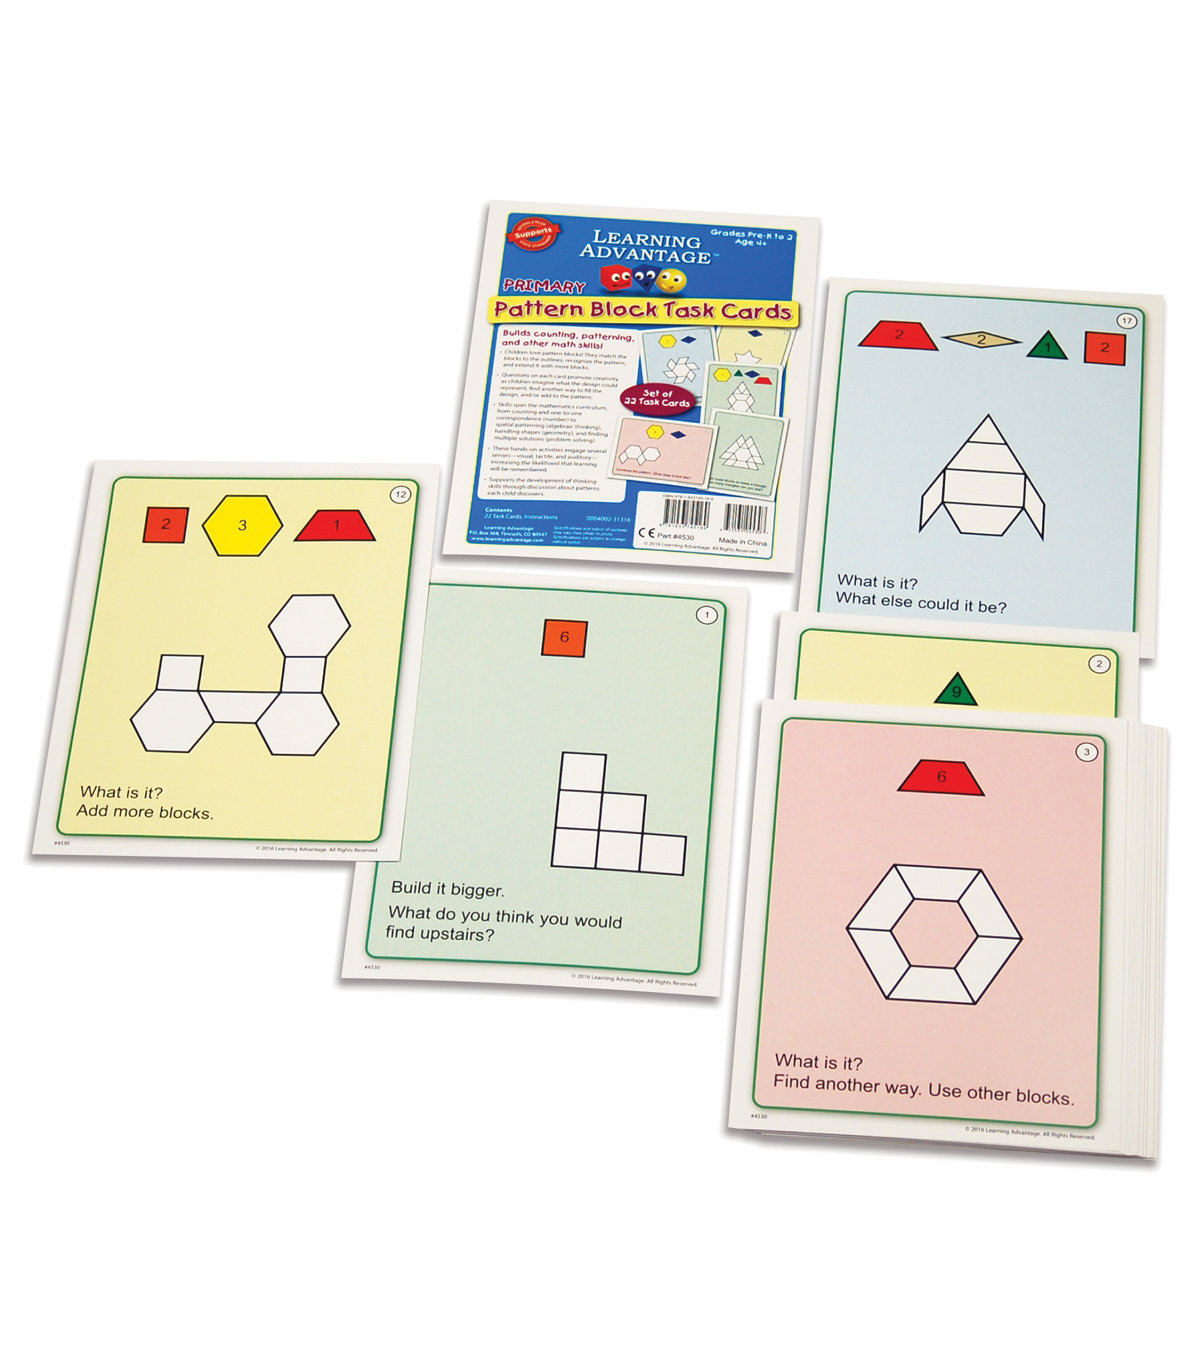 Learning Advantage Primary Pattern Blocks Task Cards, Set A